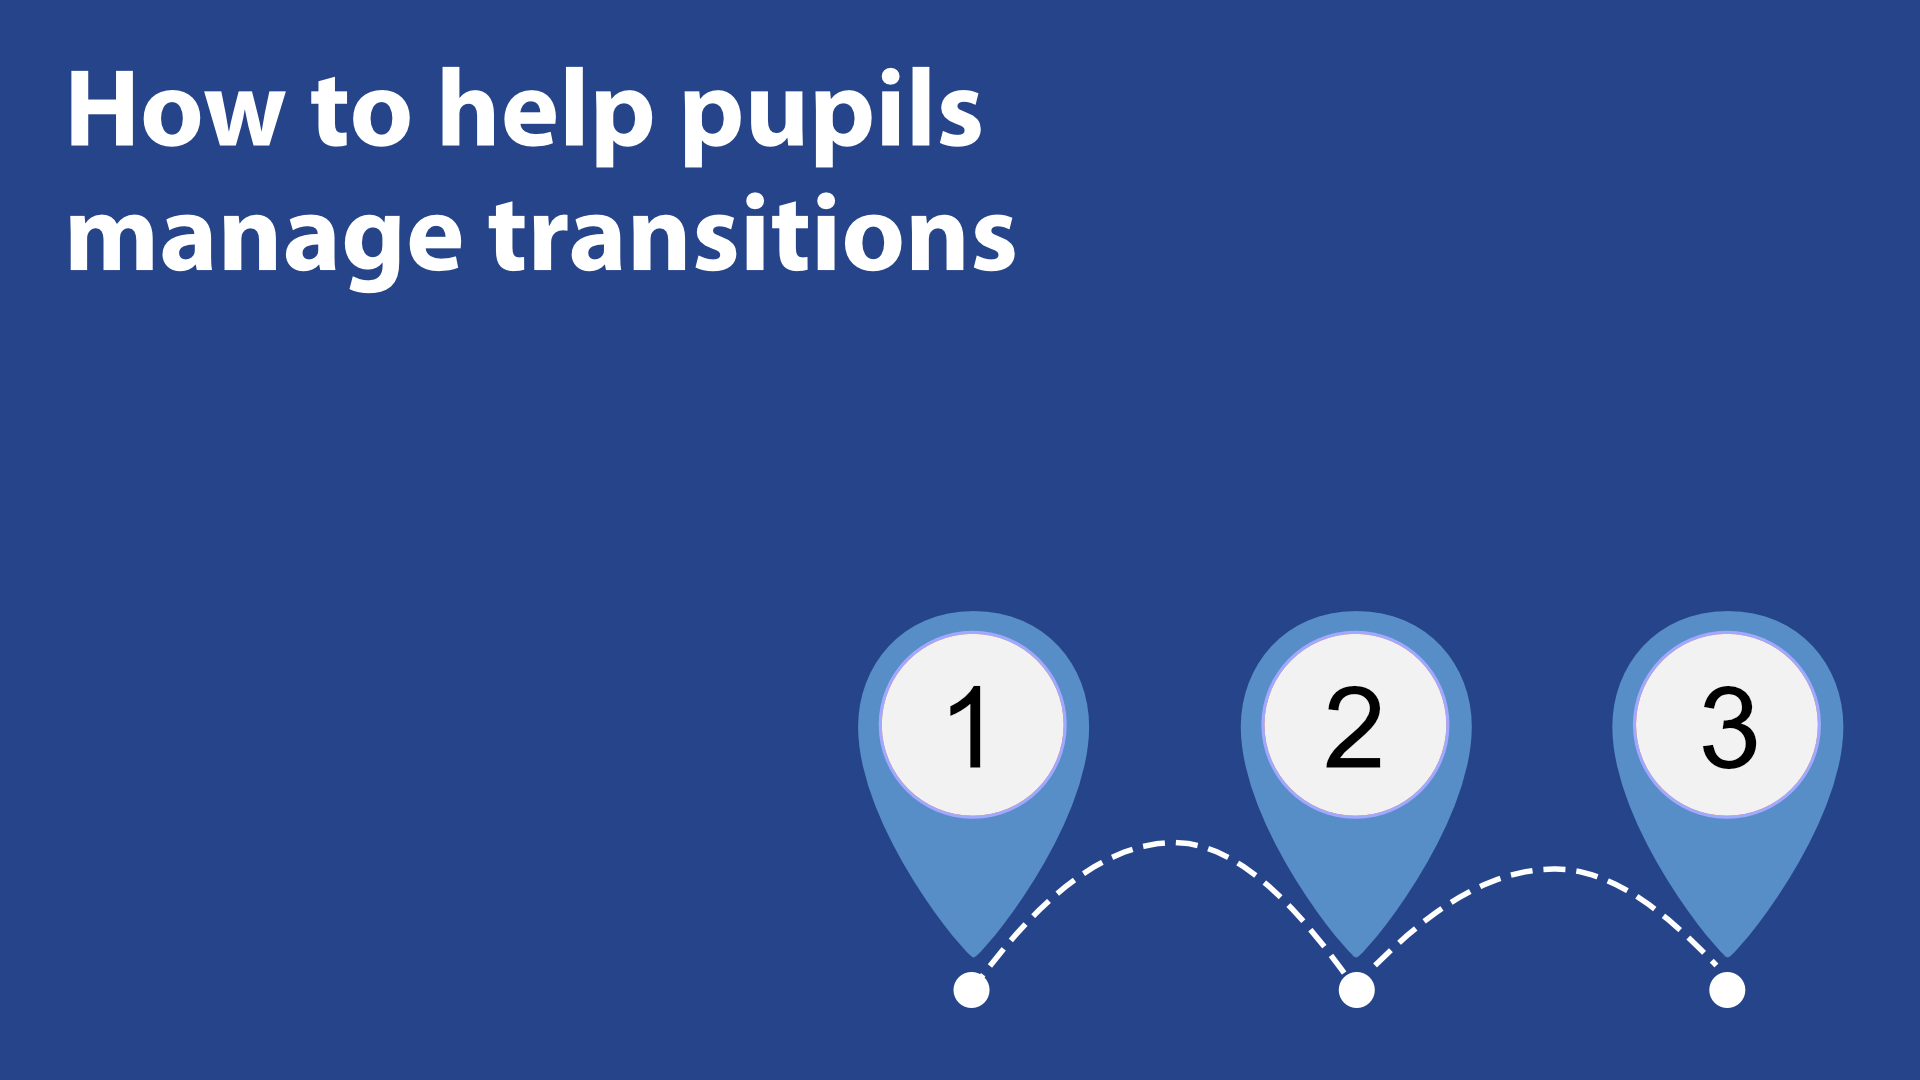 How To Help Pupils Manage Transitions image